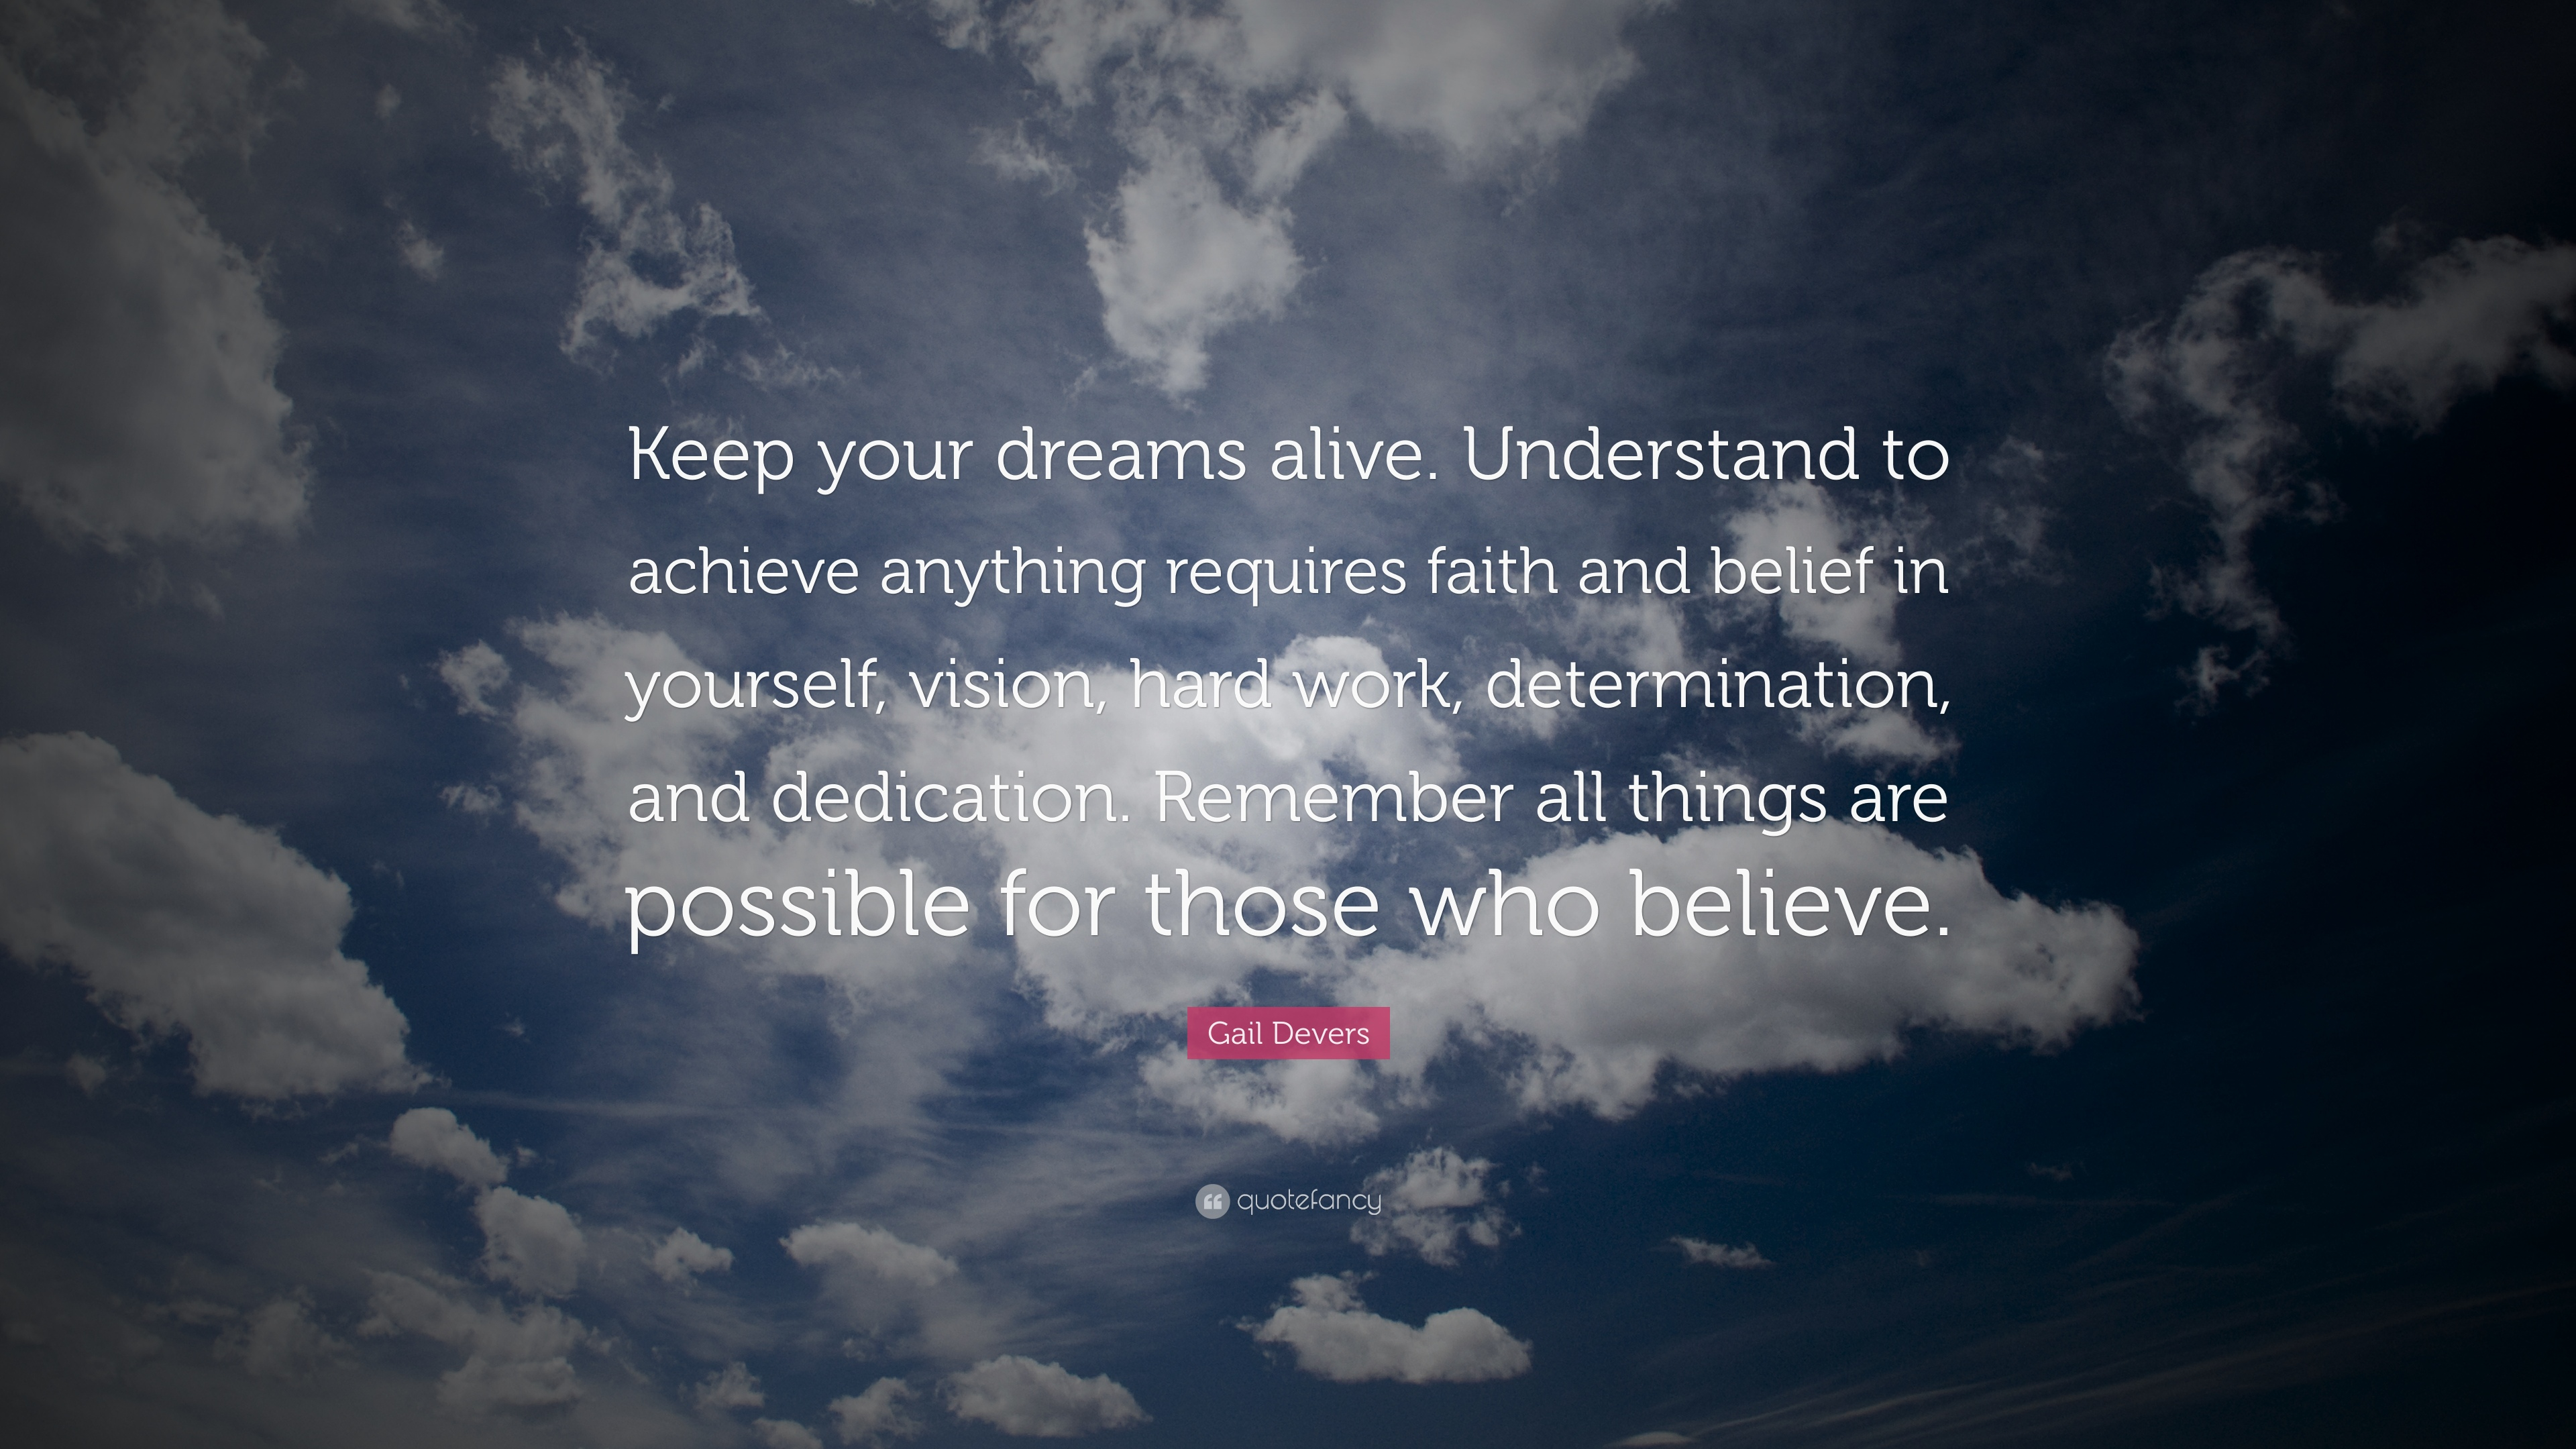 Nick Vujicic Quotes Wallpaper Gail Devers Quote Keep Your Dreams Alive Understand To